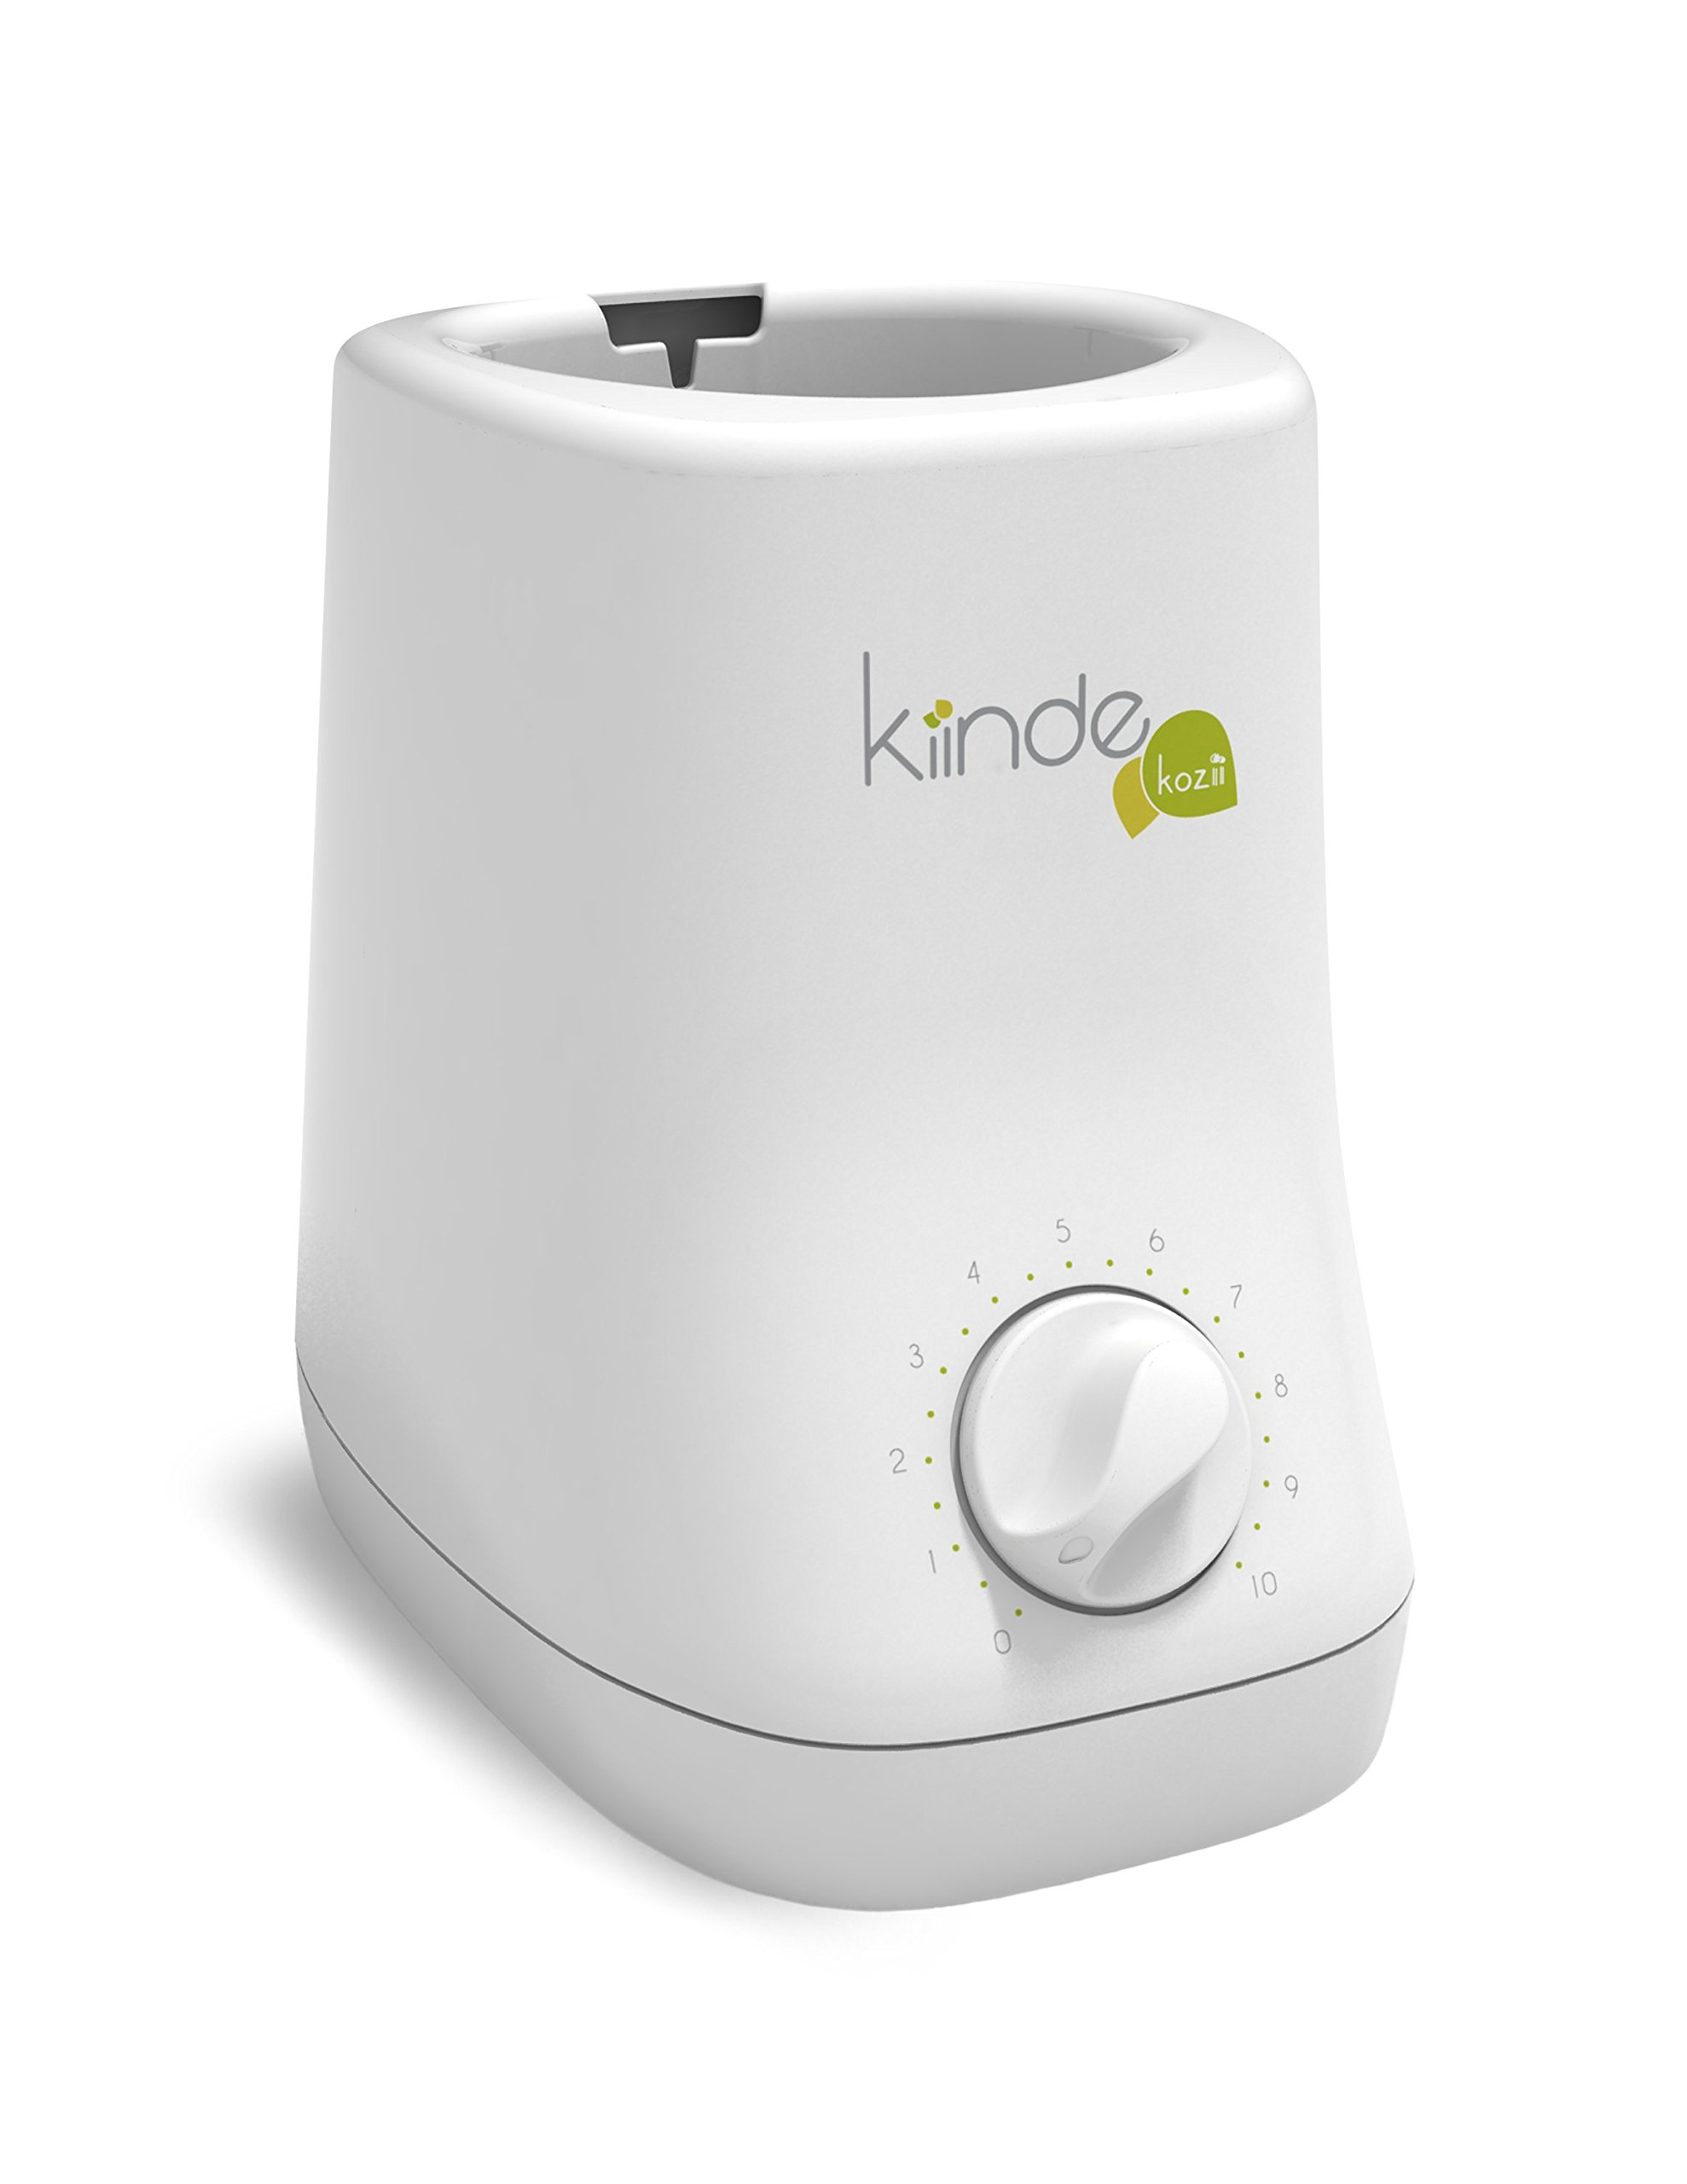 Kiinde Kozii Baby Bottle Warmer and Breast Milk Warmer for Warming Breast Milk, Infant Formula and Baby Food by Kiinde